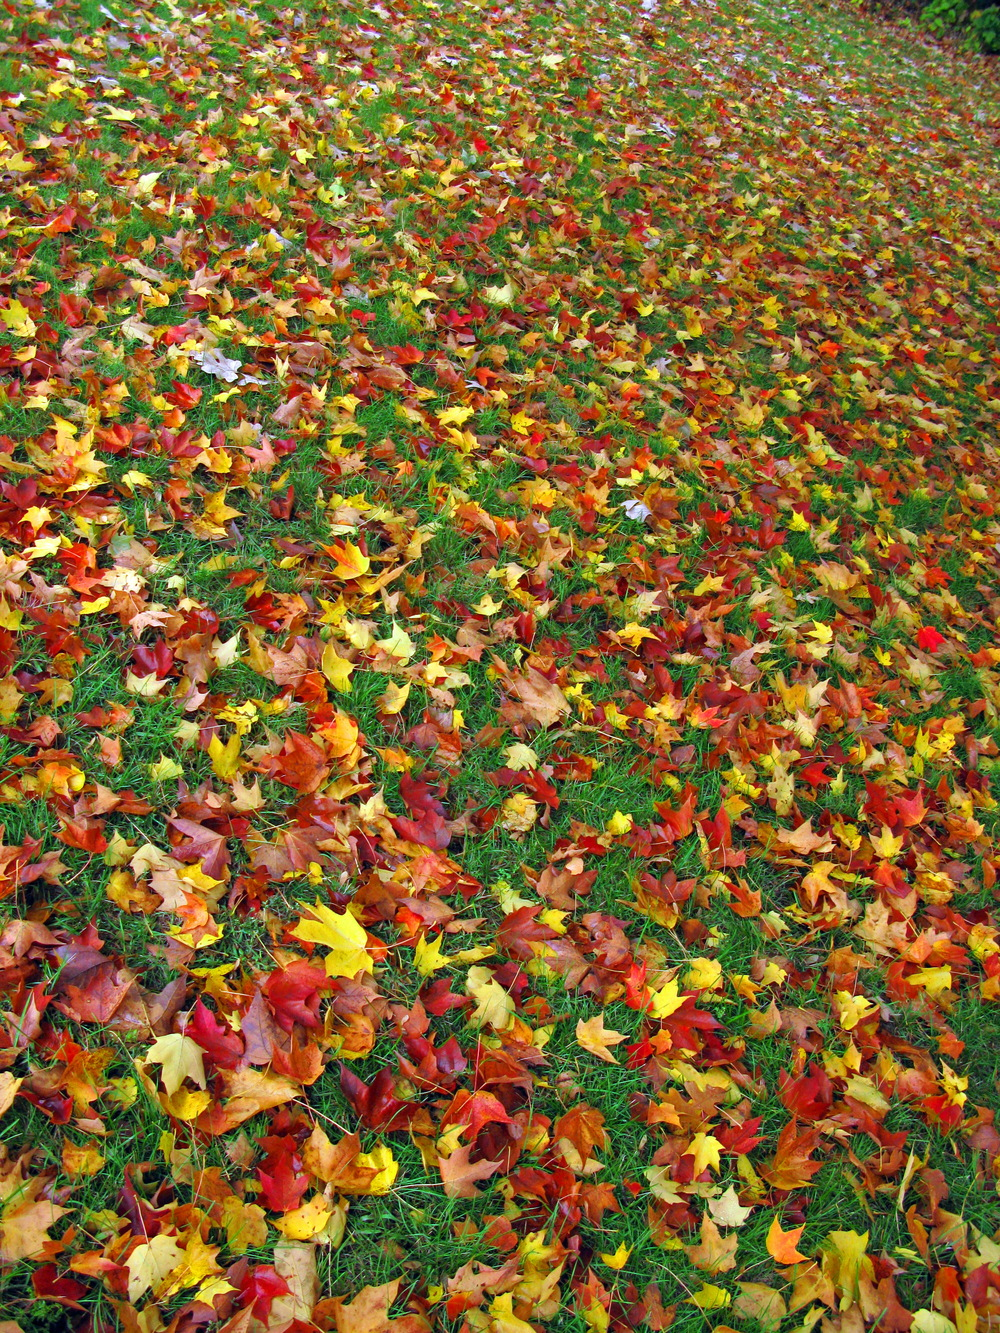 Fallen Fall Leaves.jpg